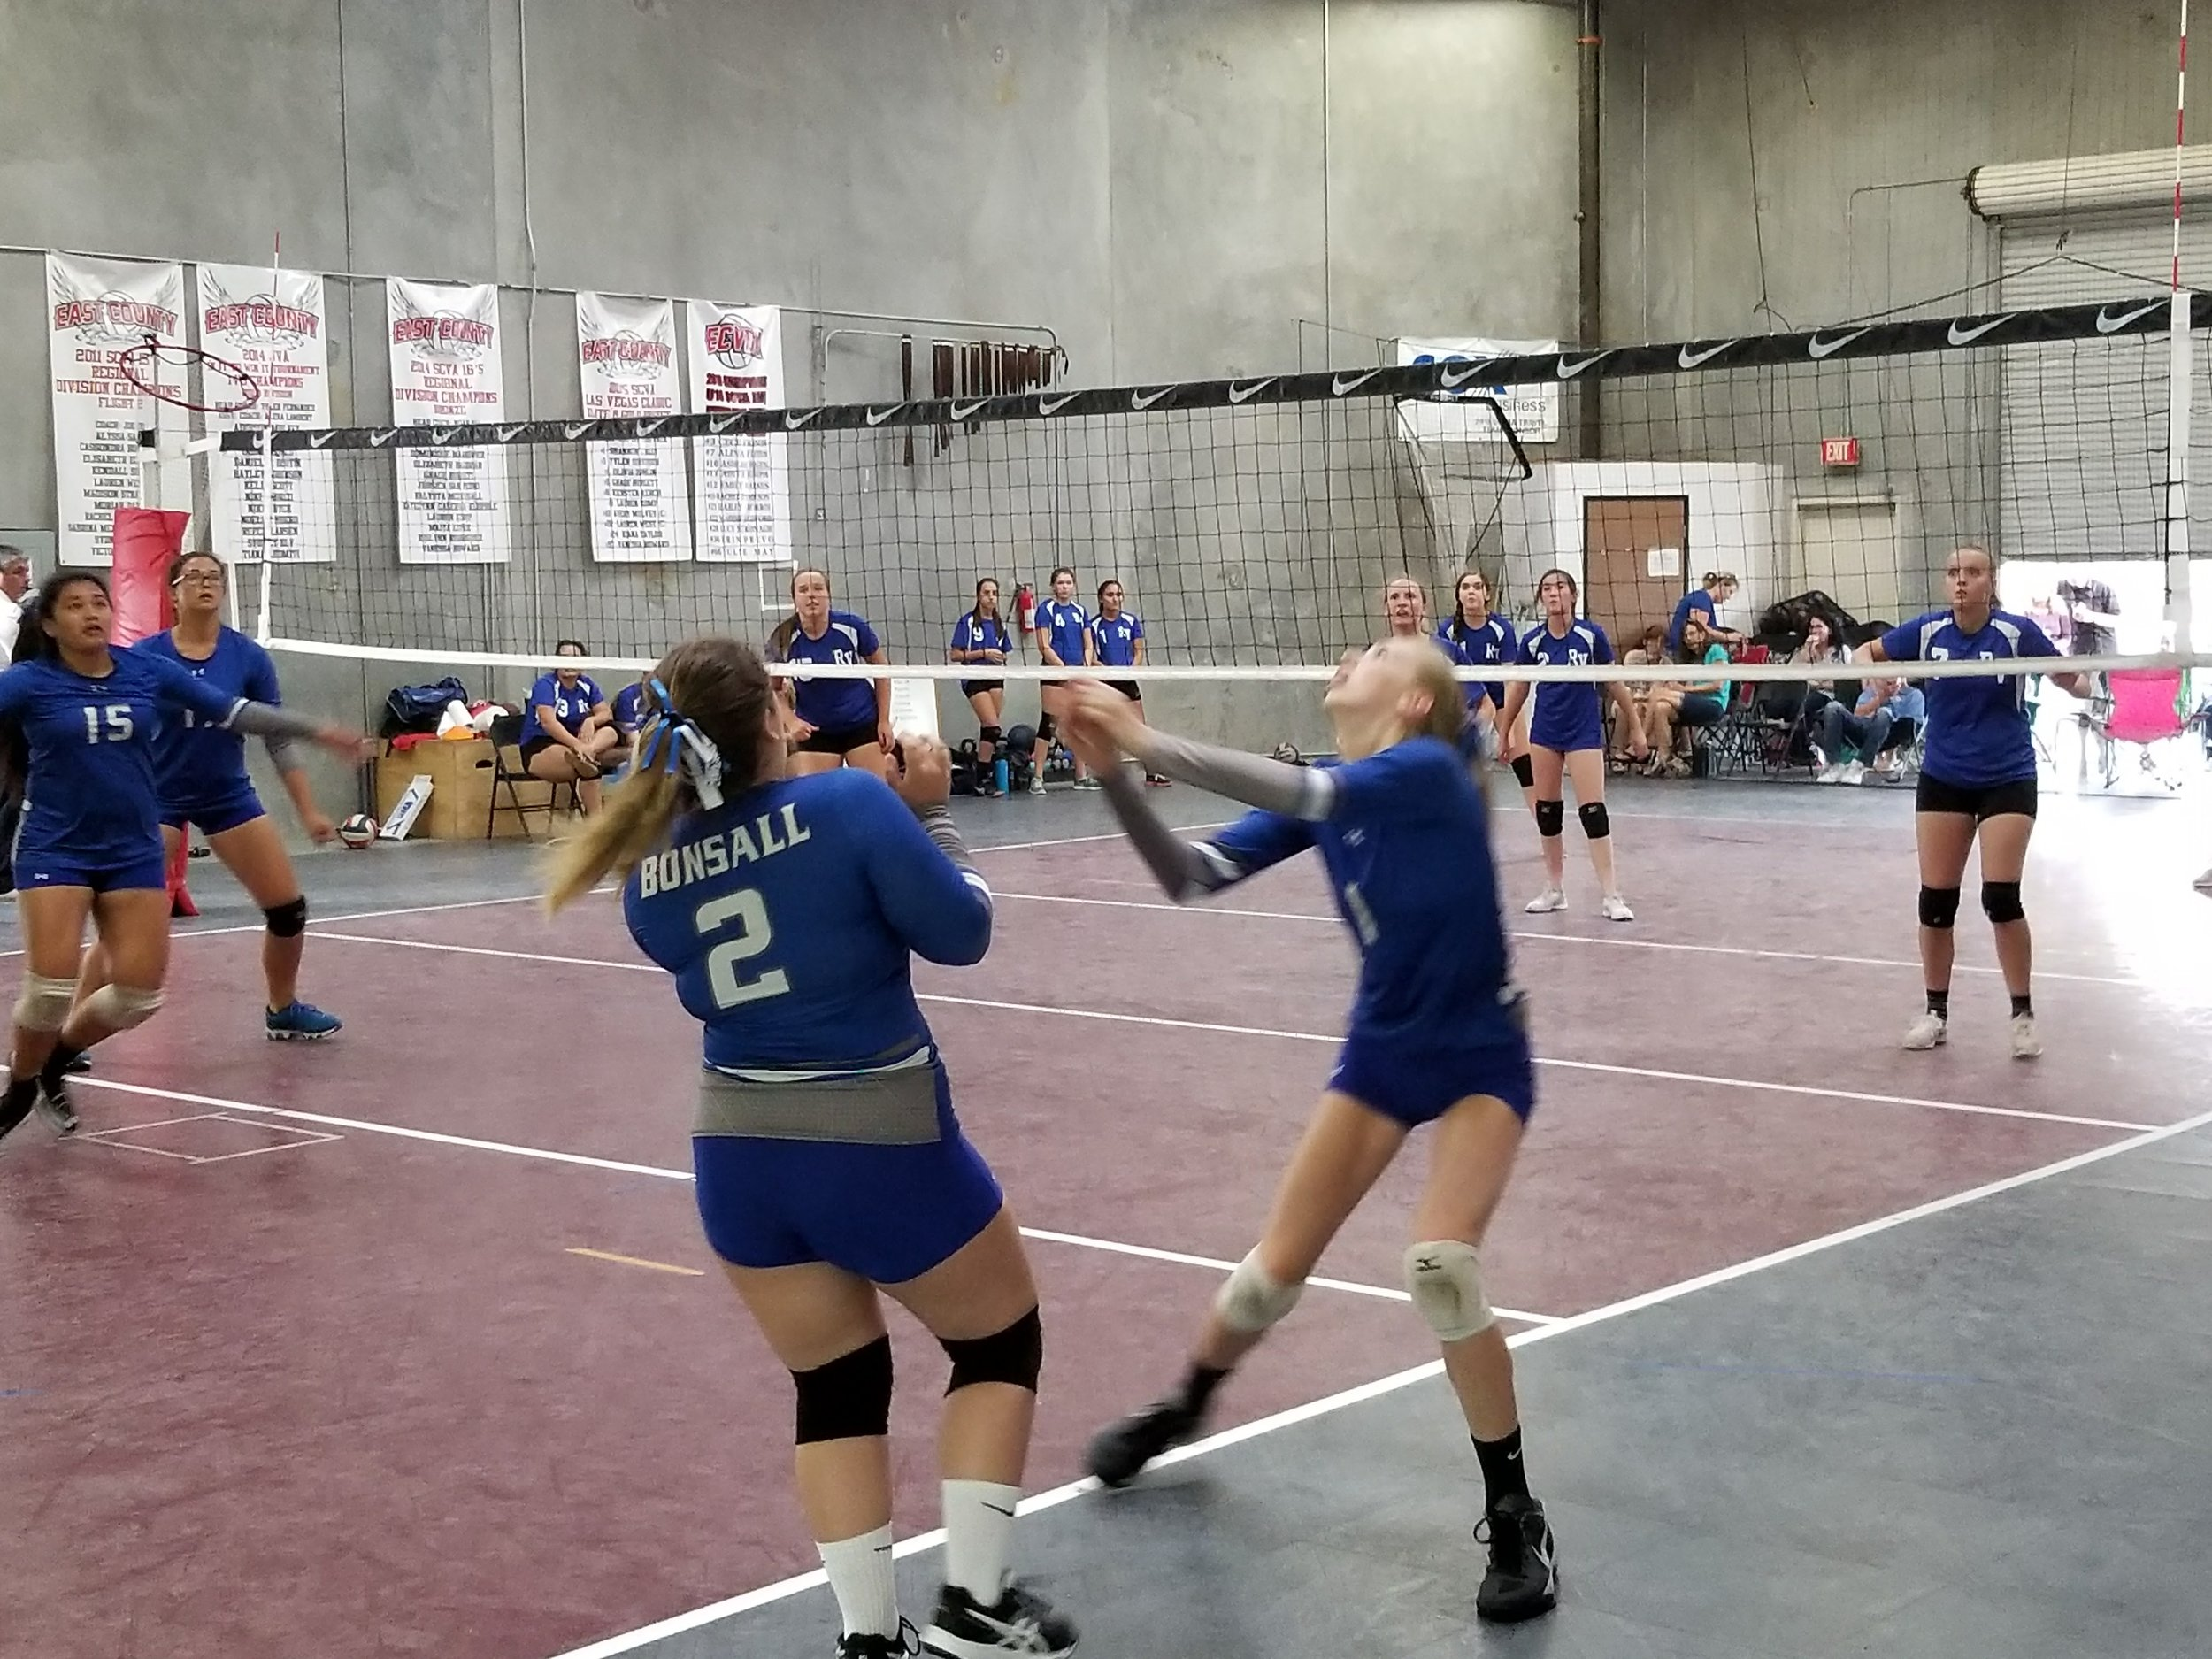 Abigail Reinard #1, stretches for a difficult setter-hit toward MaiCai Meluat #15 and Ashlin Smith (far left of court) in game 2, the first BHS win. Team Captain Alexandra Beker #2, calls the shots.